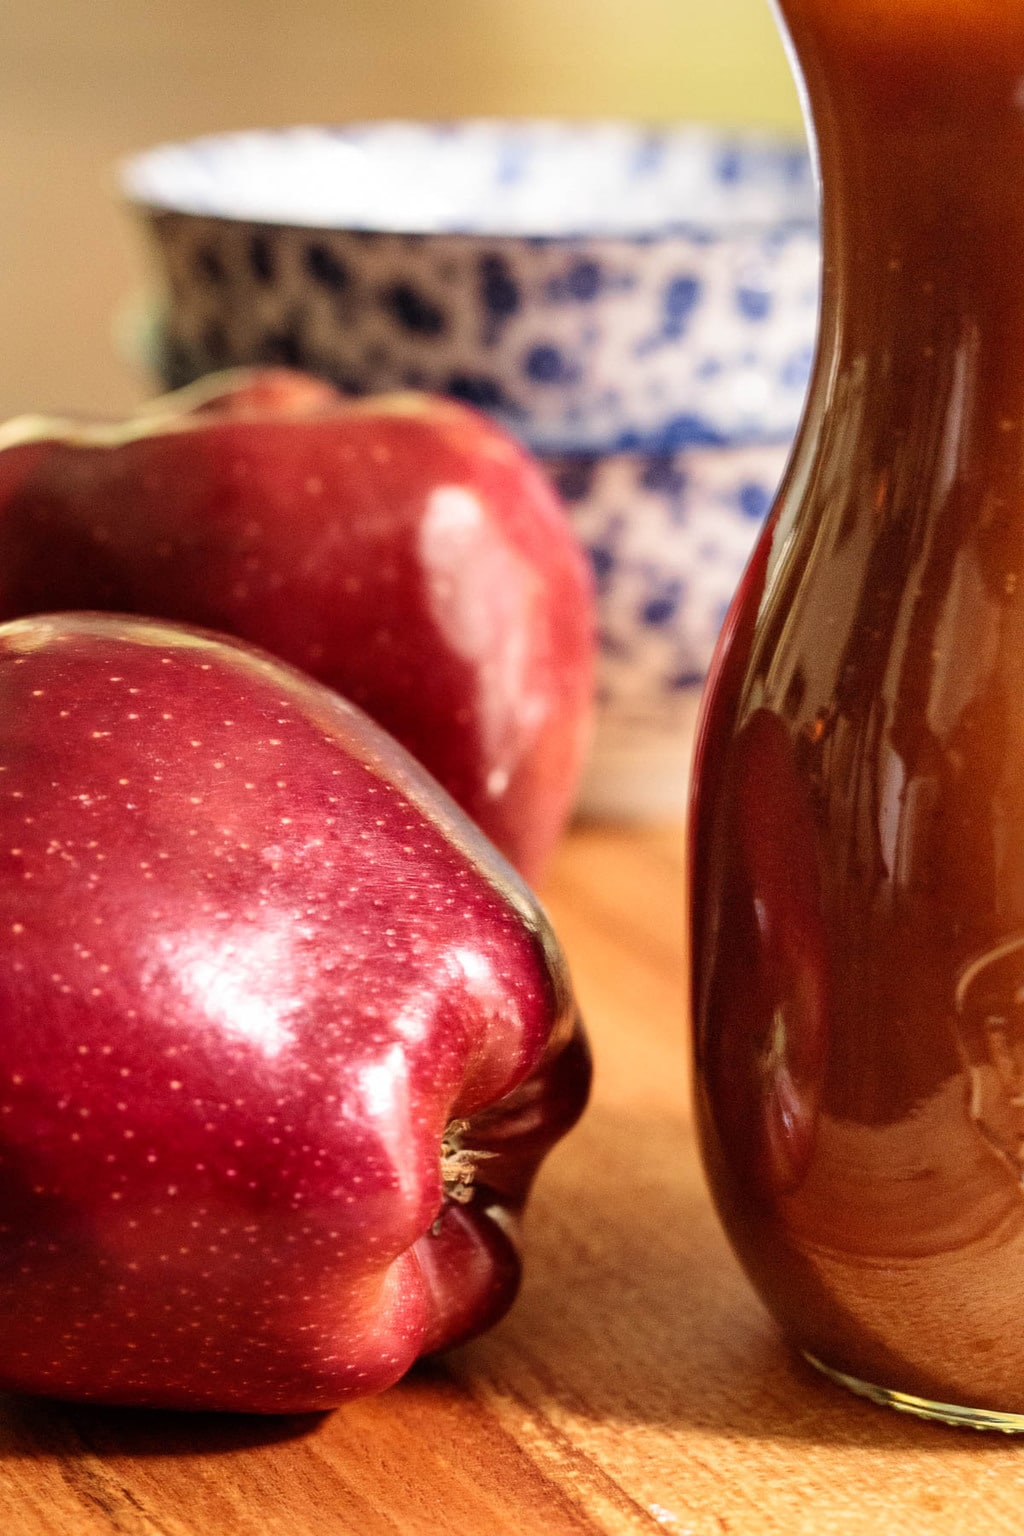 Photo of a glass jar of Salted Apple Cider Caramel Sauce on a wood table with red apples and serving dishes in the foreground and background.